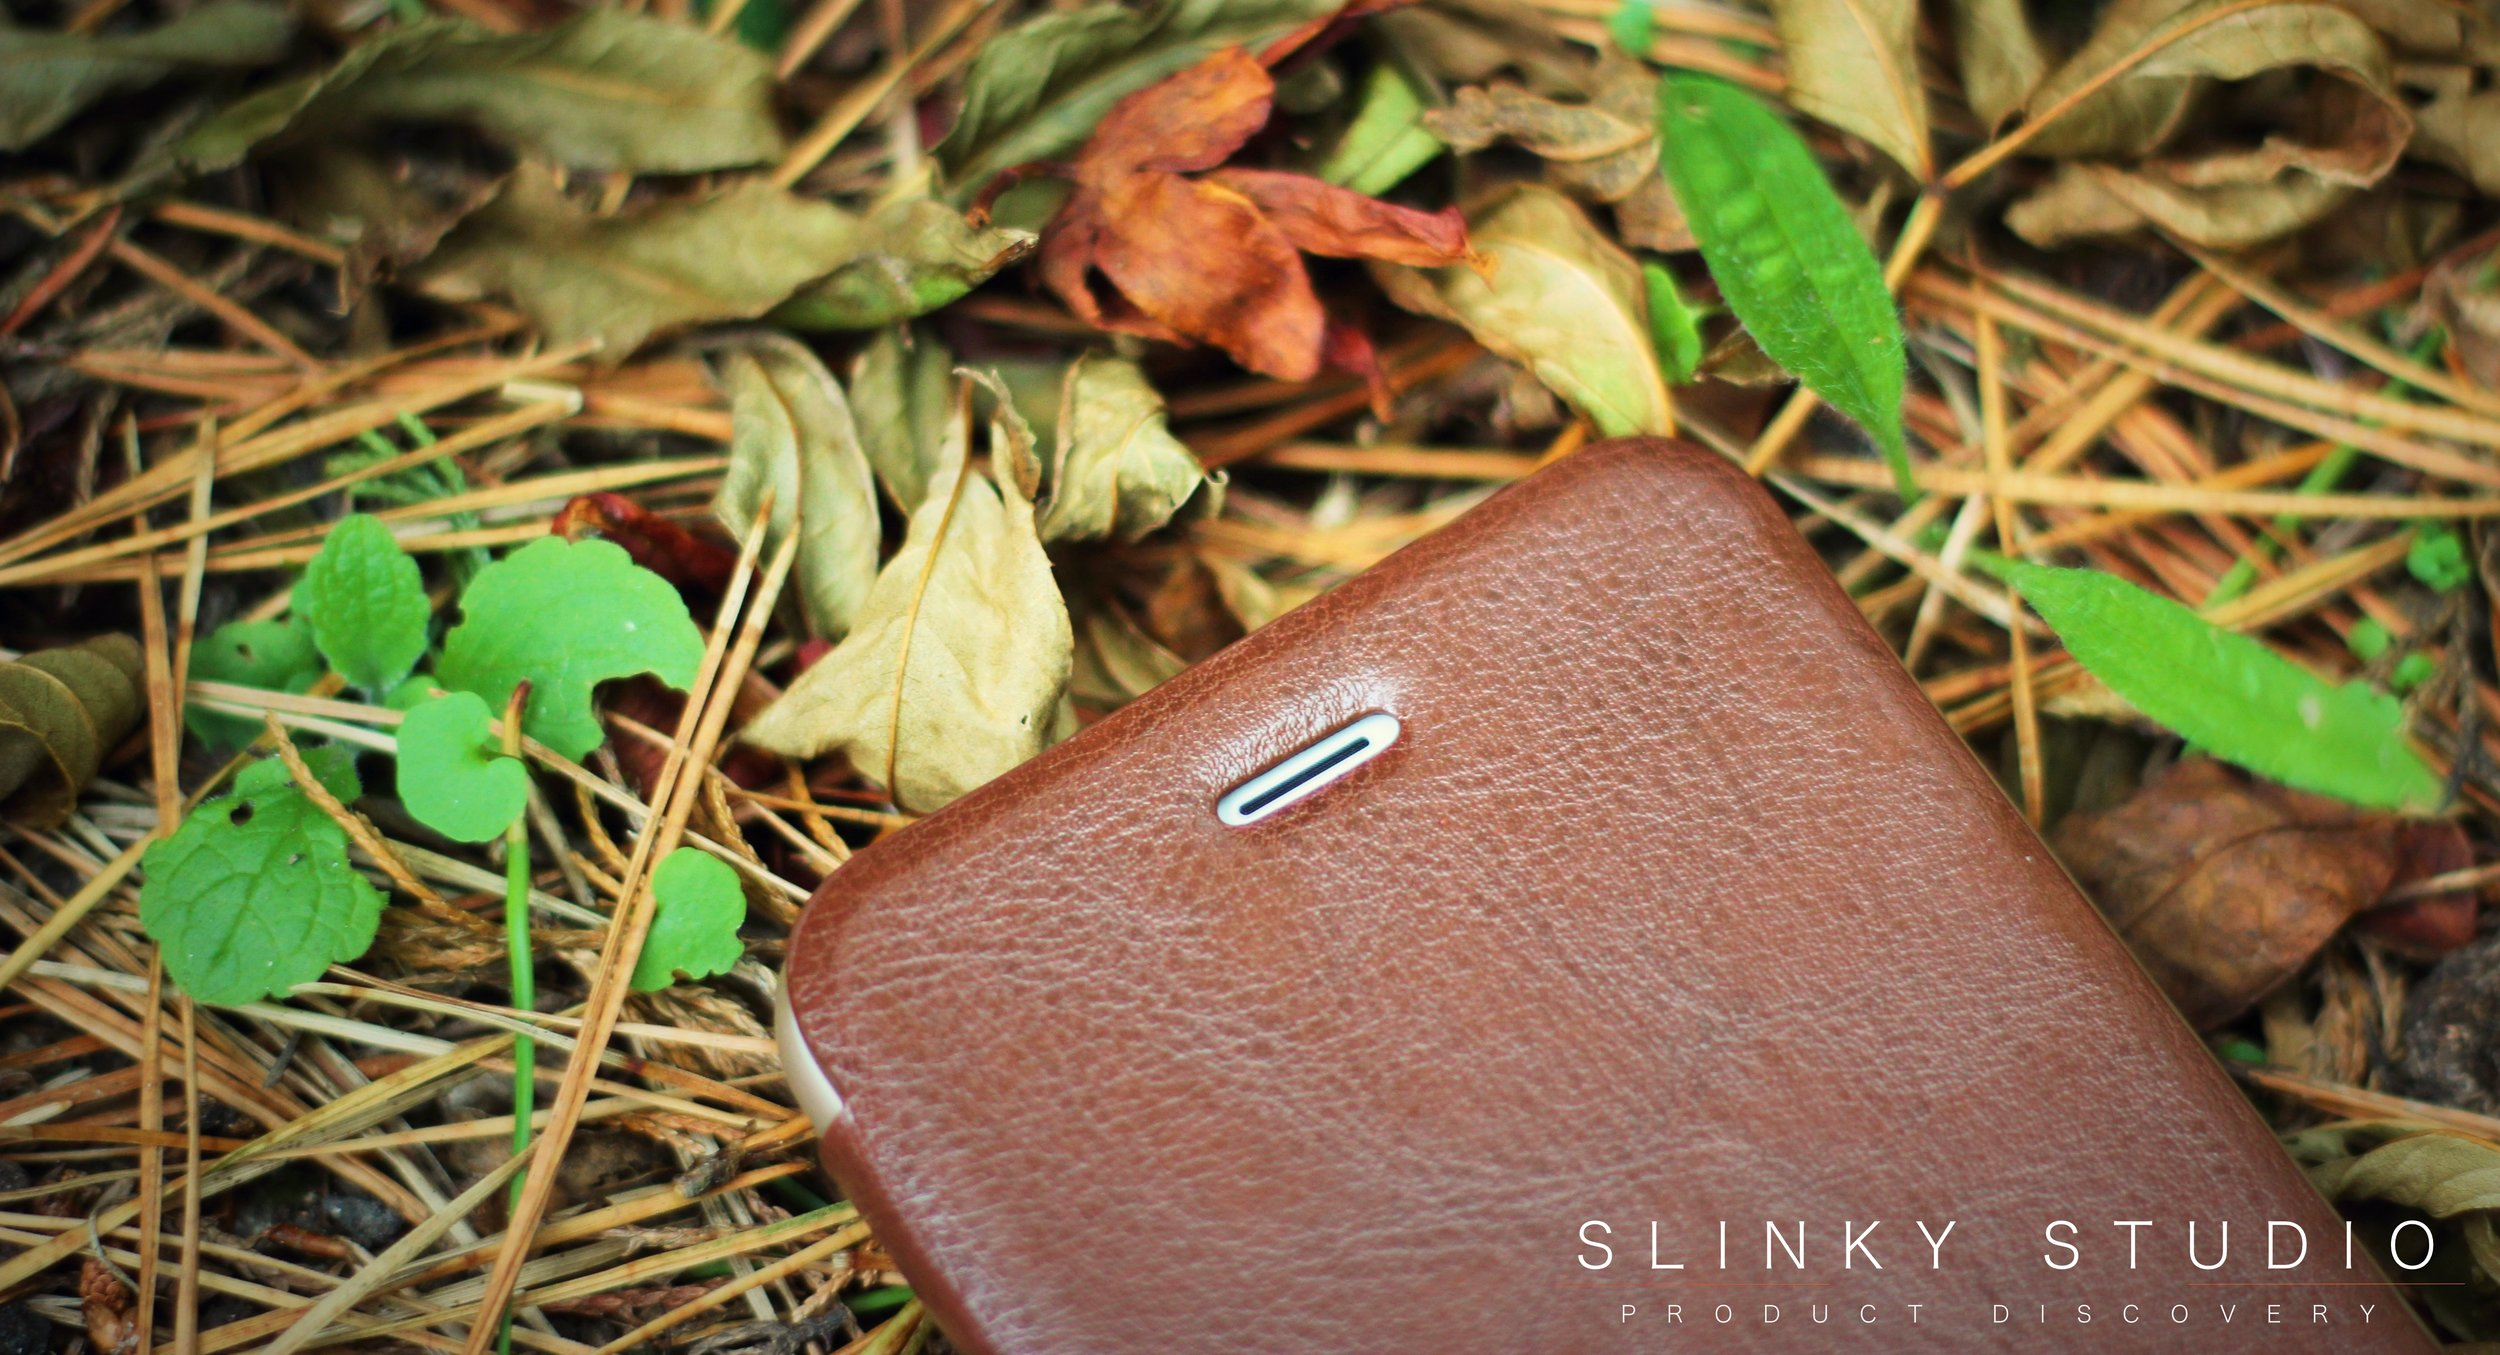 Elago Leather Flip Case for iPhone 6:6s Plus Front Speaker Cut Out Lying on Pile of Leafs.jpg